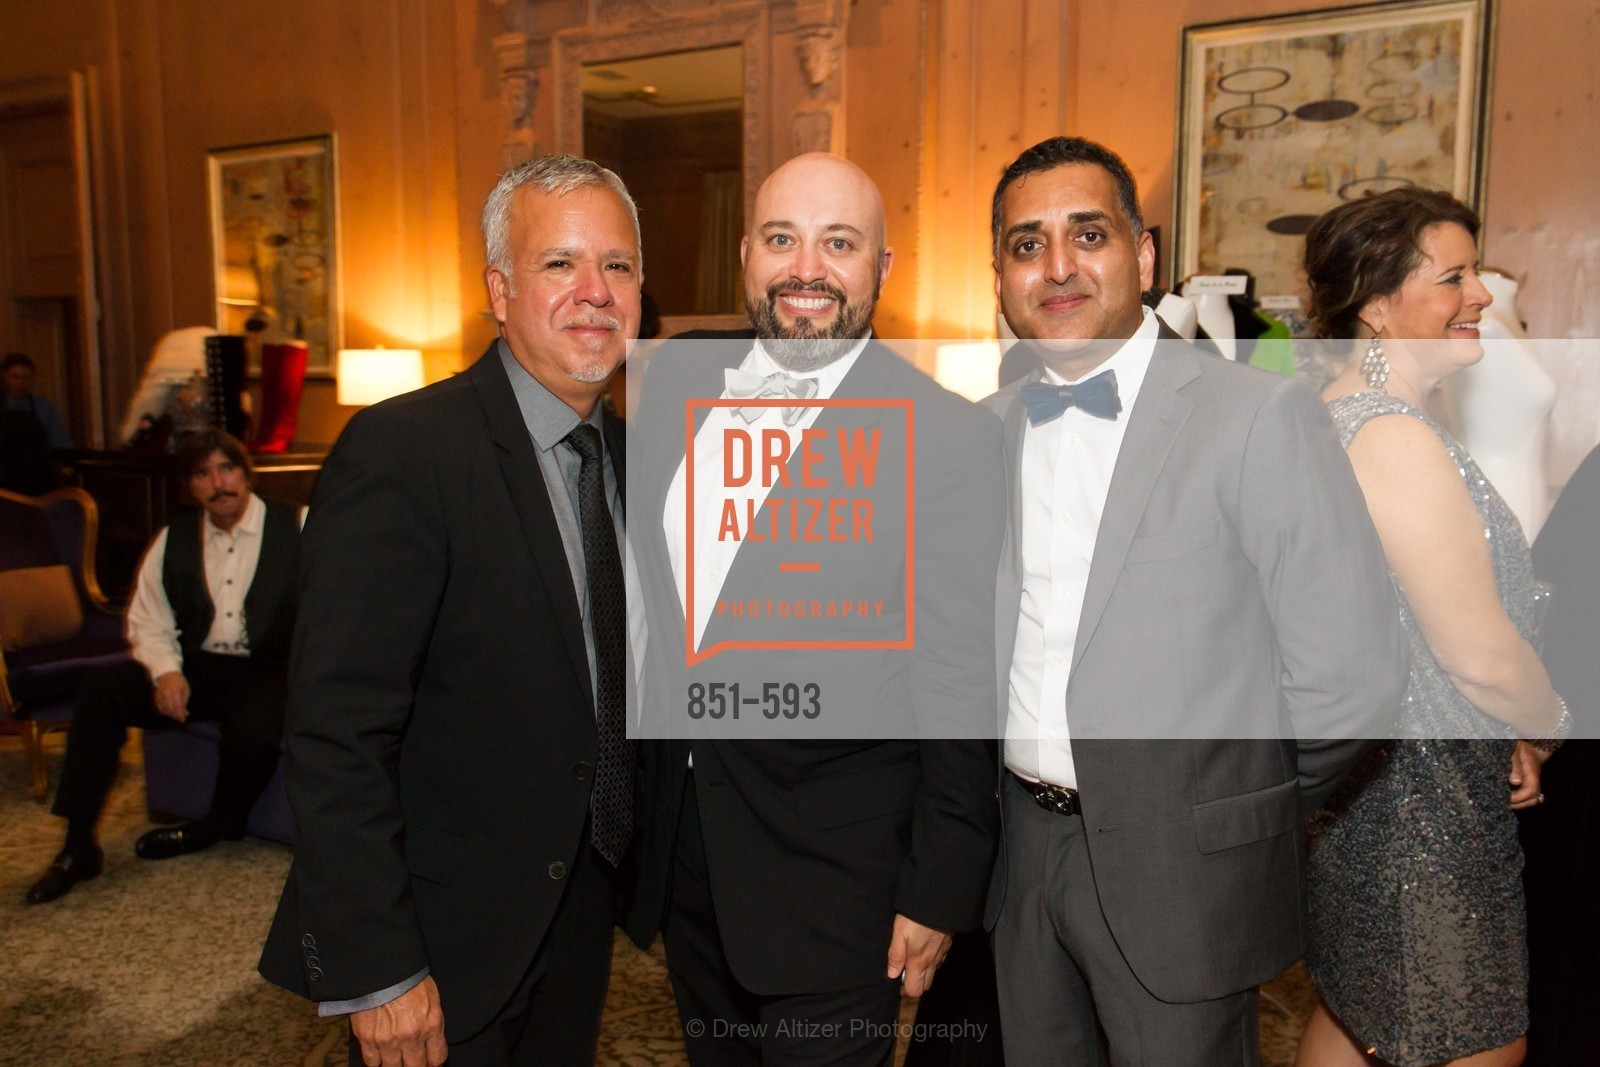 Randy Ynegas, Alfredo Pedroza, Anil Dutt, COUTURE FOR A CAUSE, US, October 5th, 2014,Drew Altizer, Drew Altizer Photography, full-service agency, private events, San Francisco photographer, photographer california